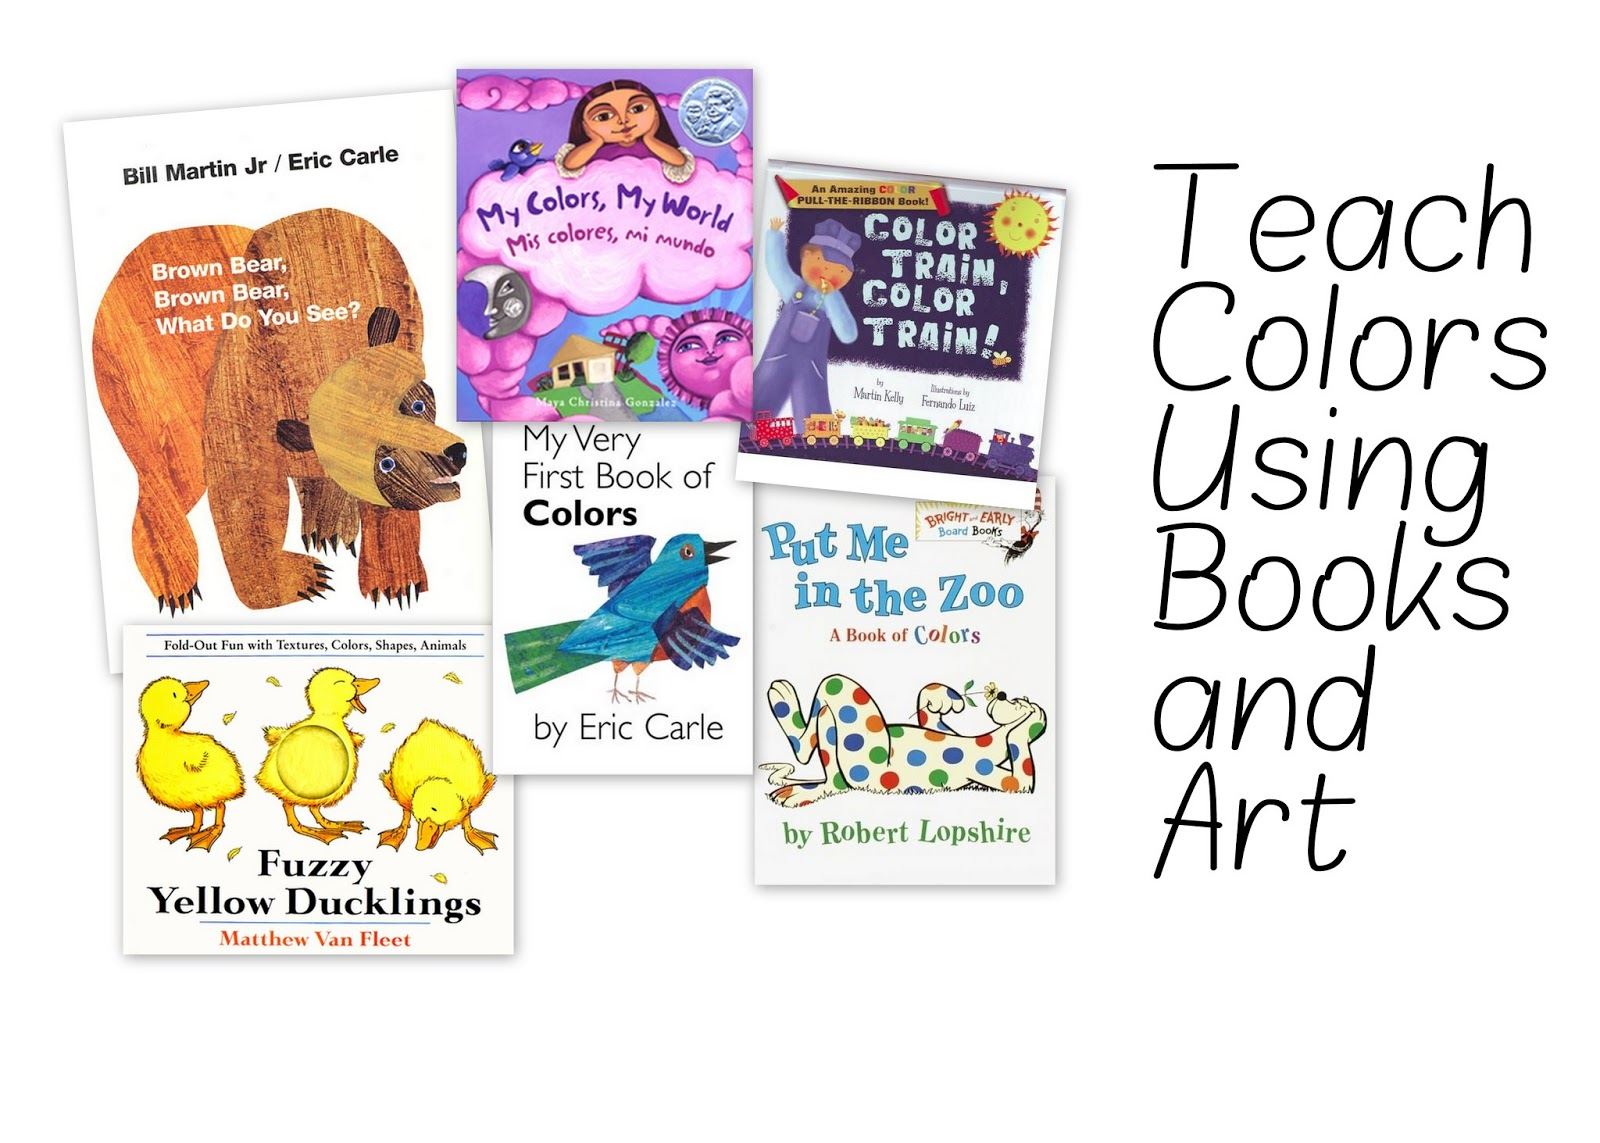 Little Scribblers Art Club: Teach Colors Using Books and Art